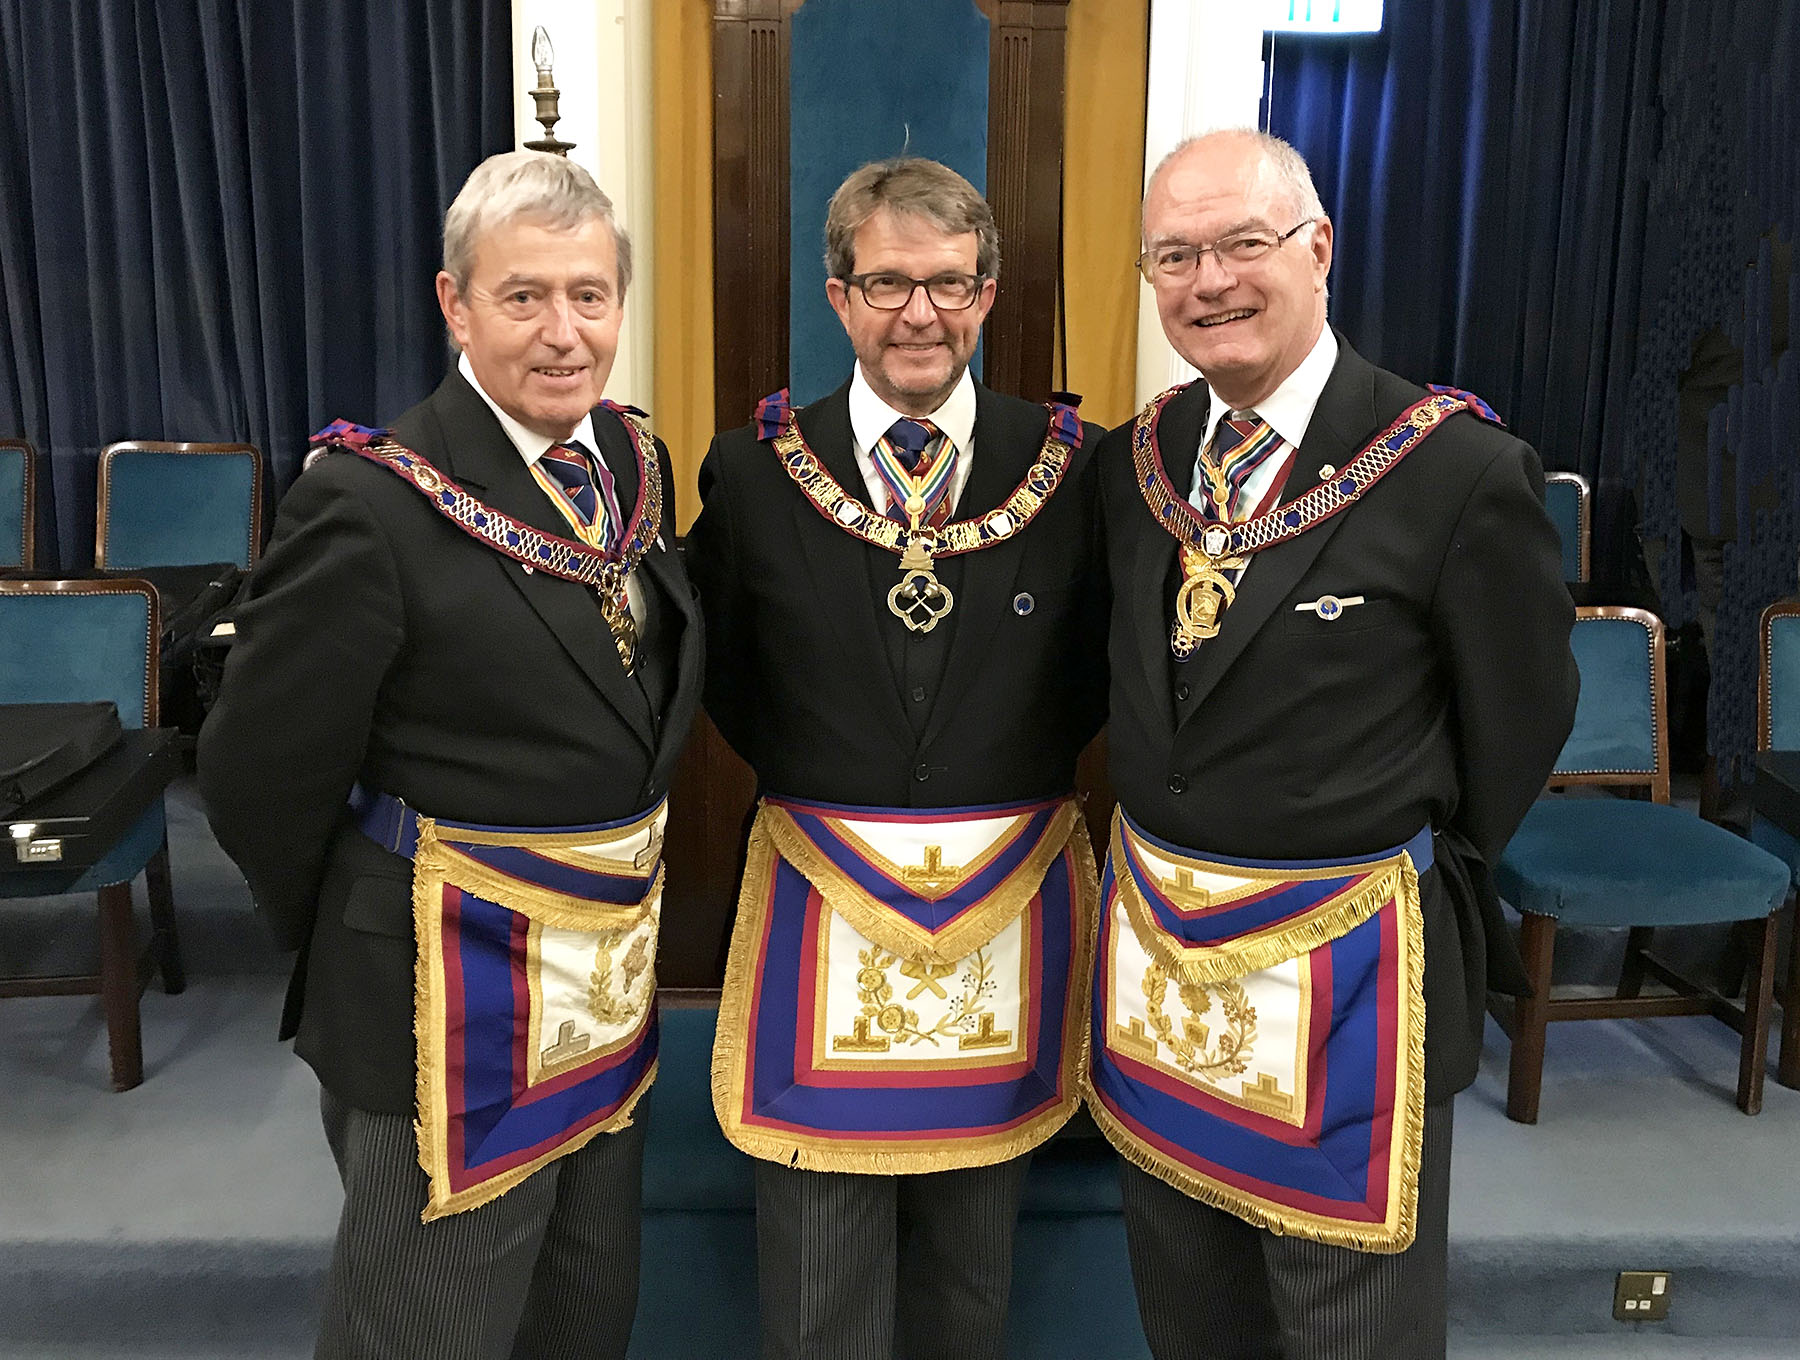 Visit to the Provincial Mark Grand Lodges of South Wales and Monmouthshire